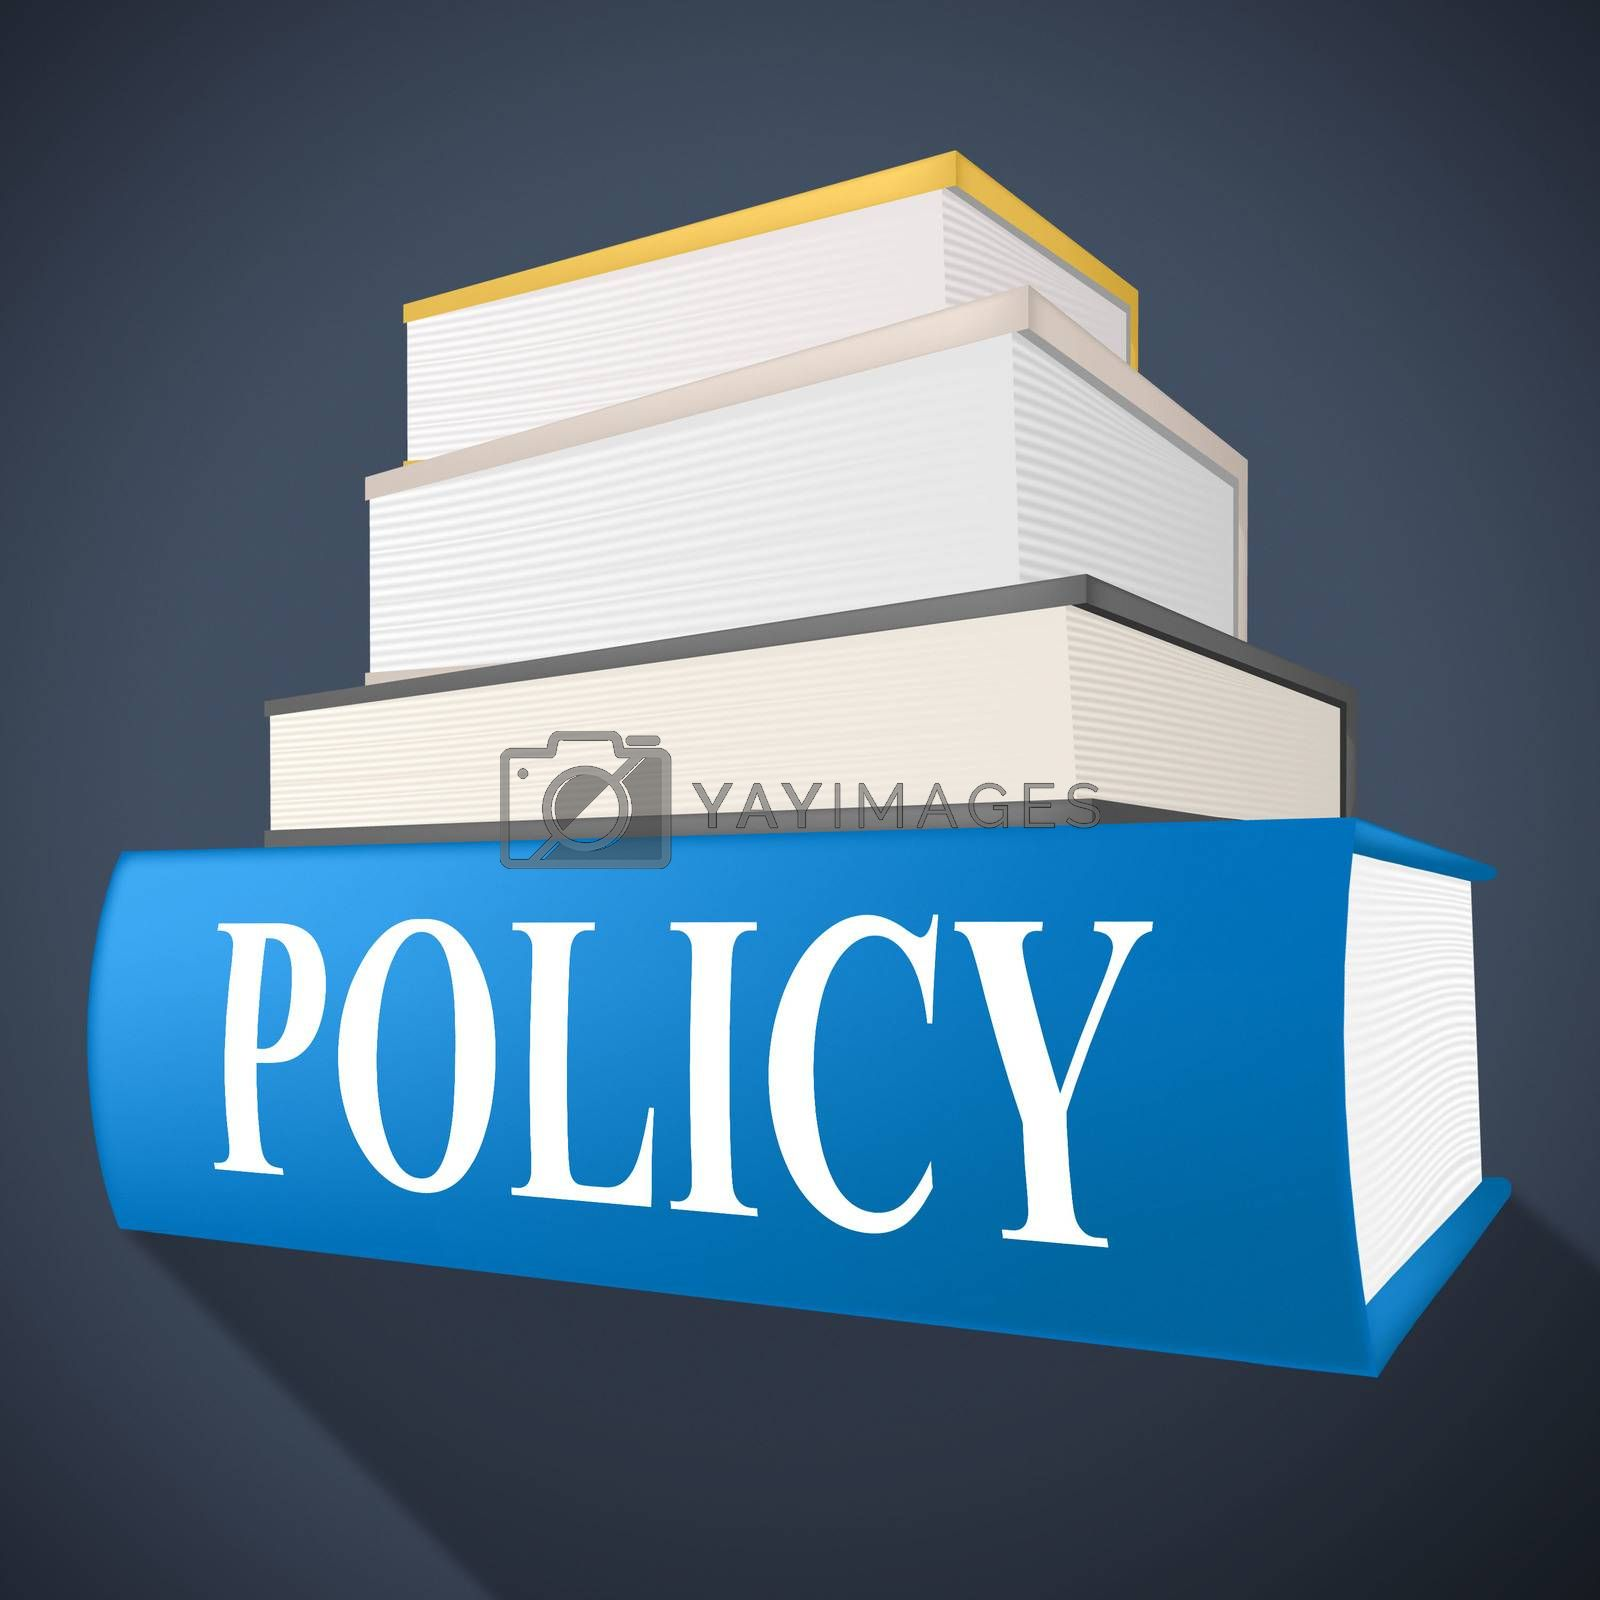 Policy Book Means Rule Conditions And Textbook by stuartmiles